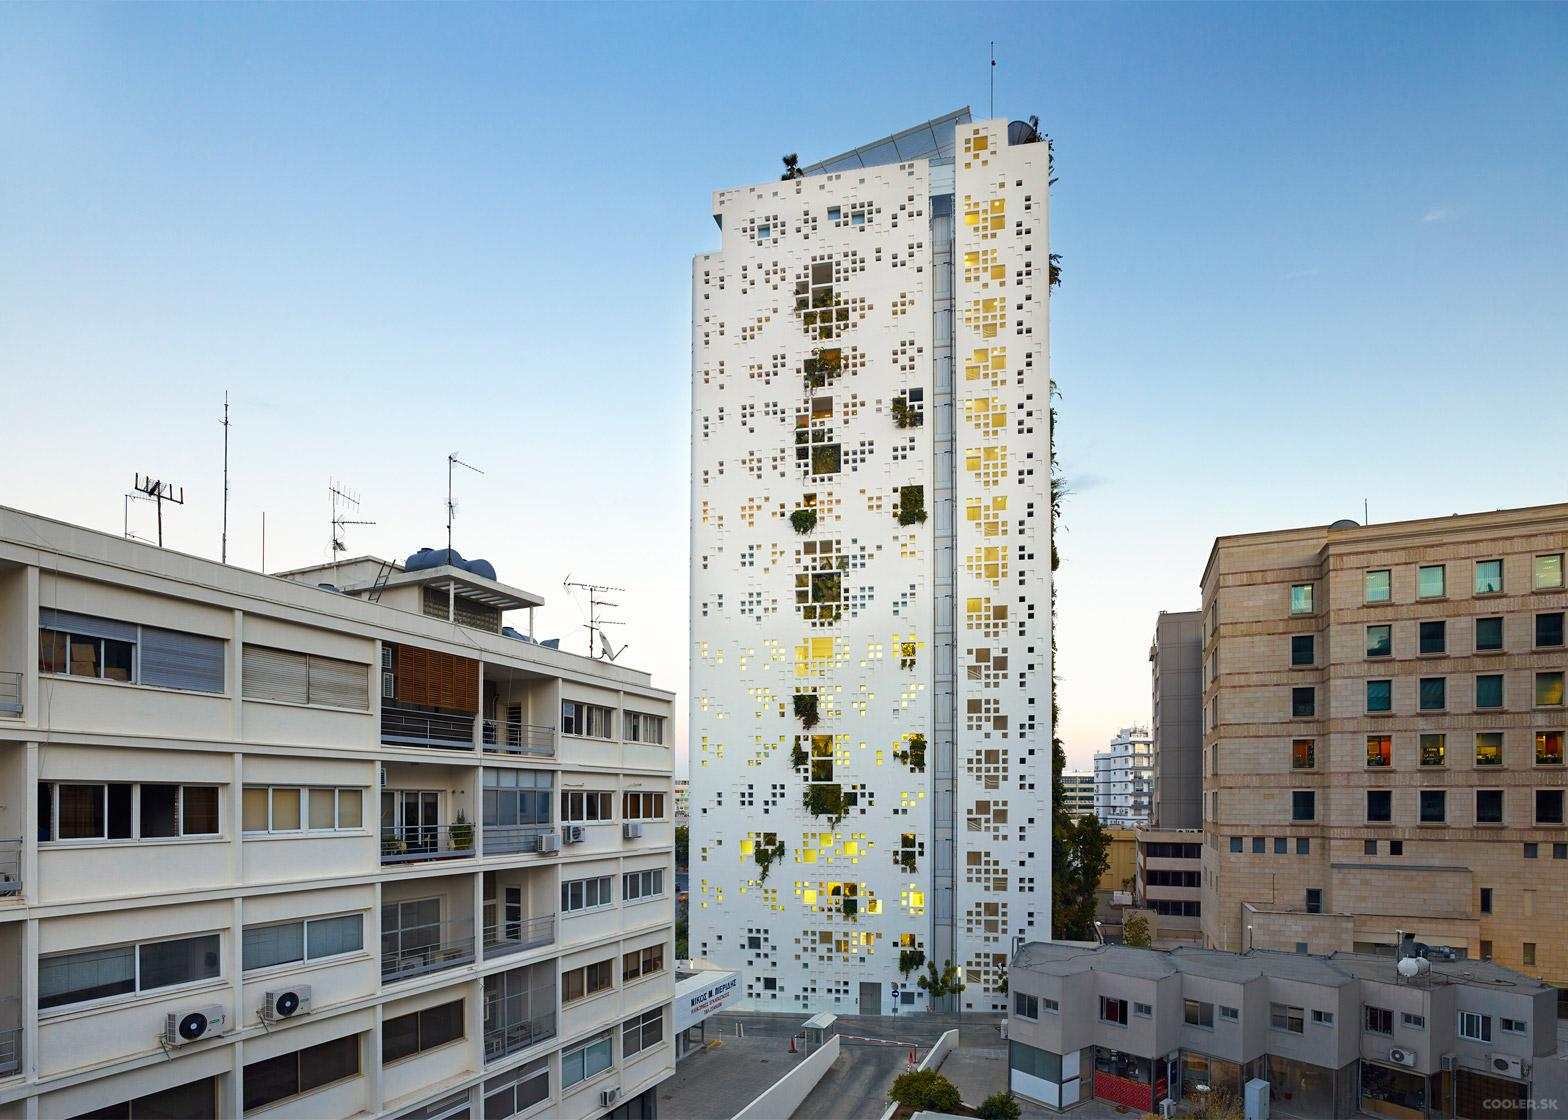 tower-25-jean-nouvel-nicosia-cyprus-pixellated-concrete_dezeen_1568_5